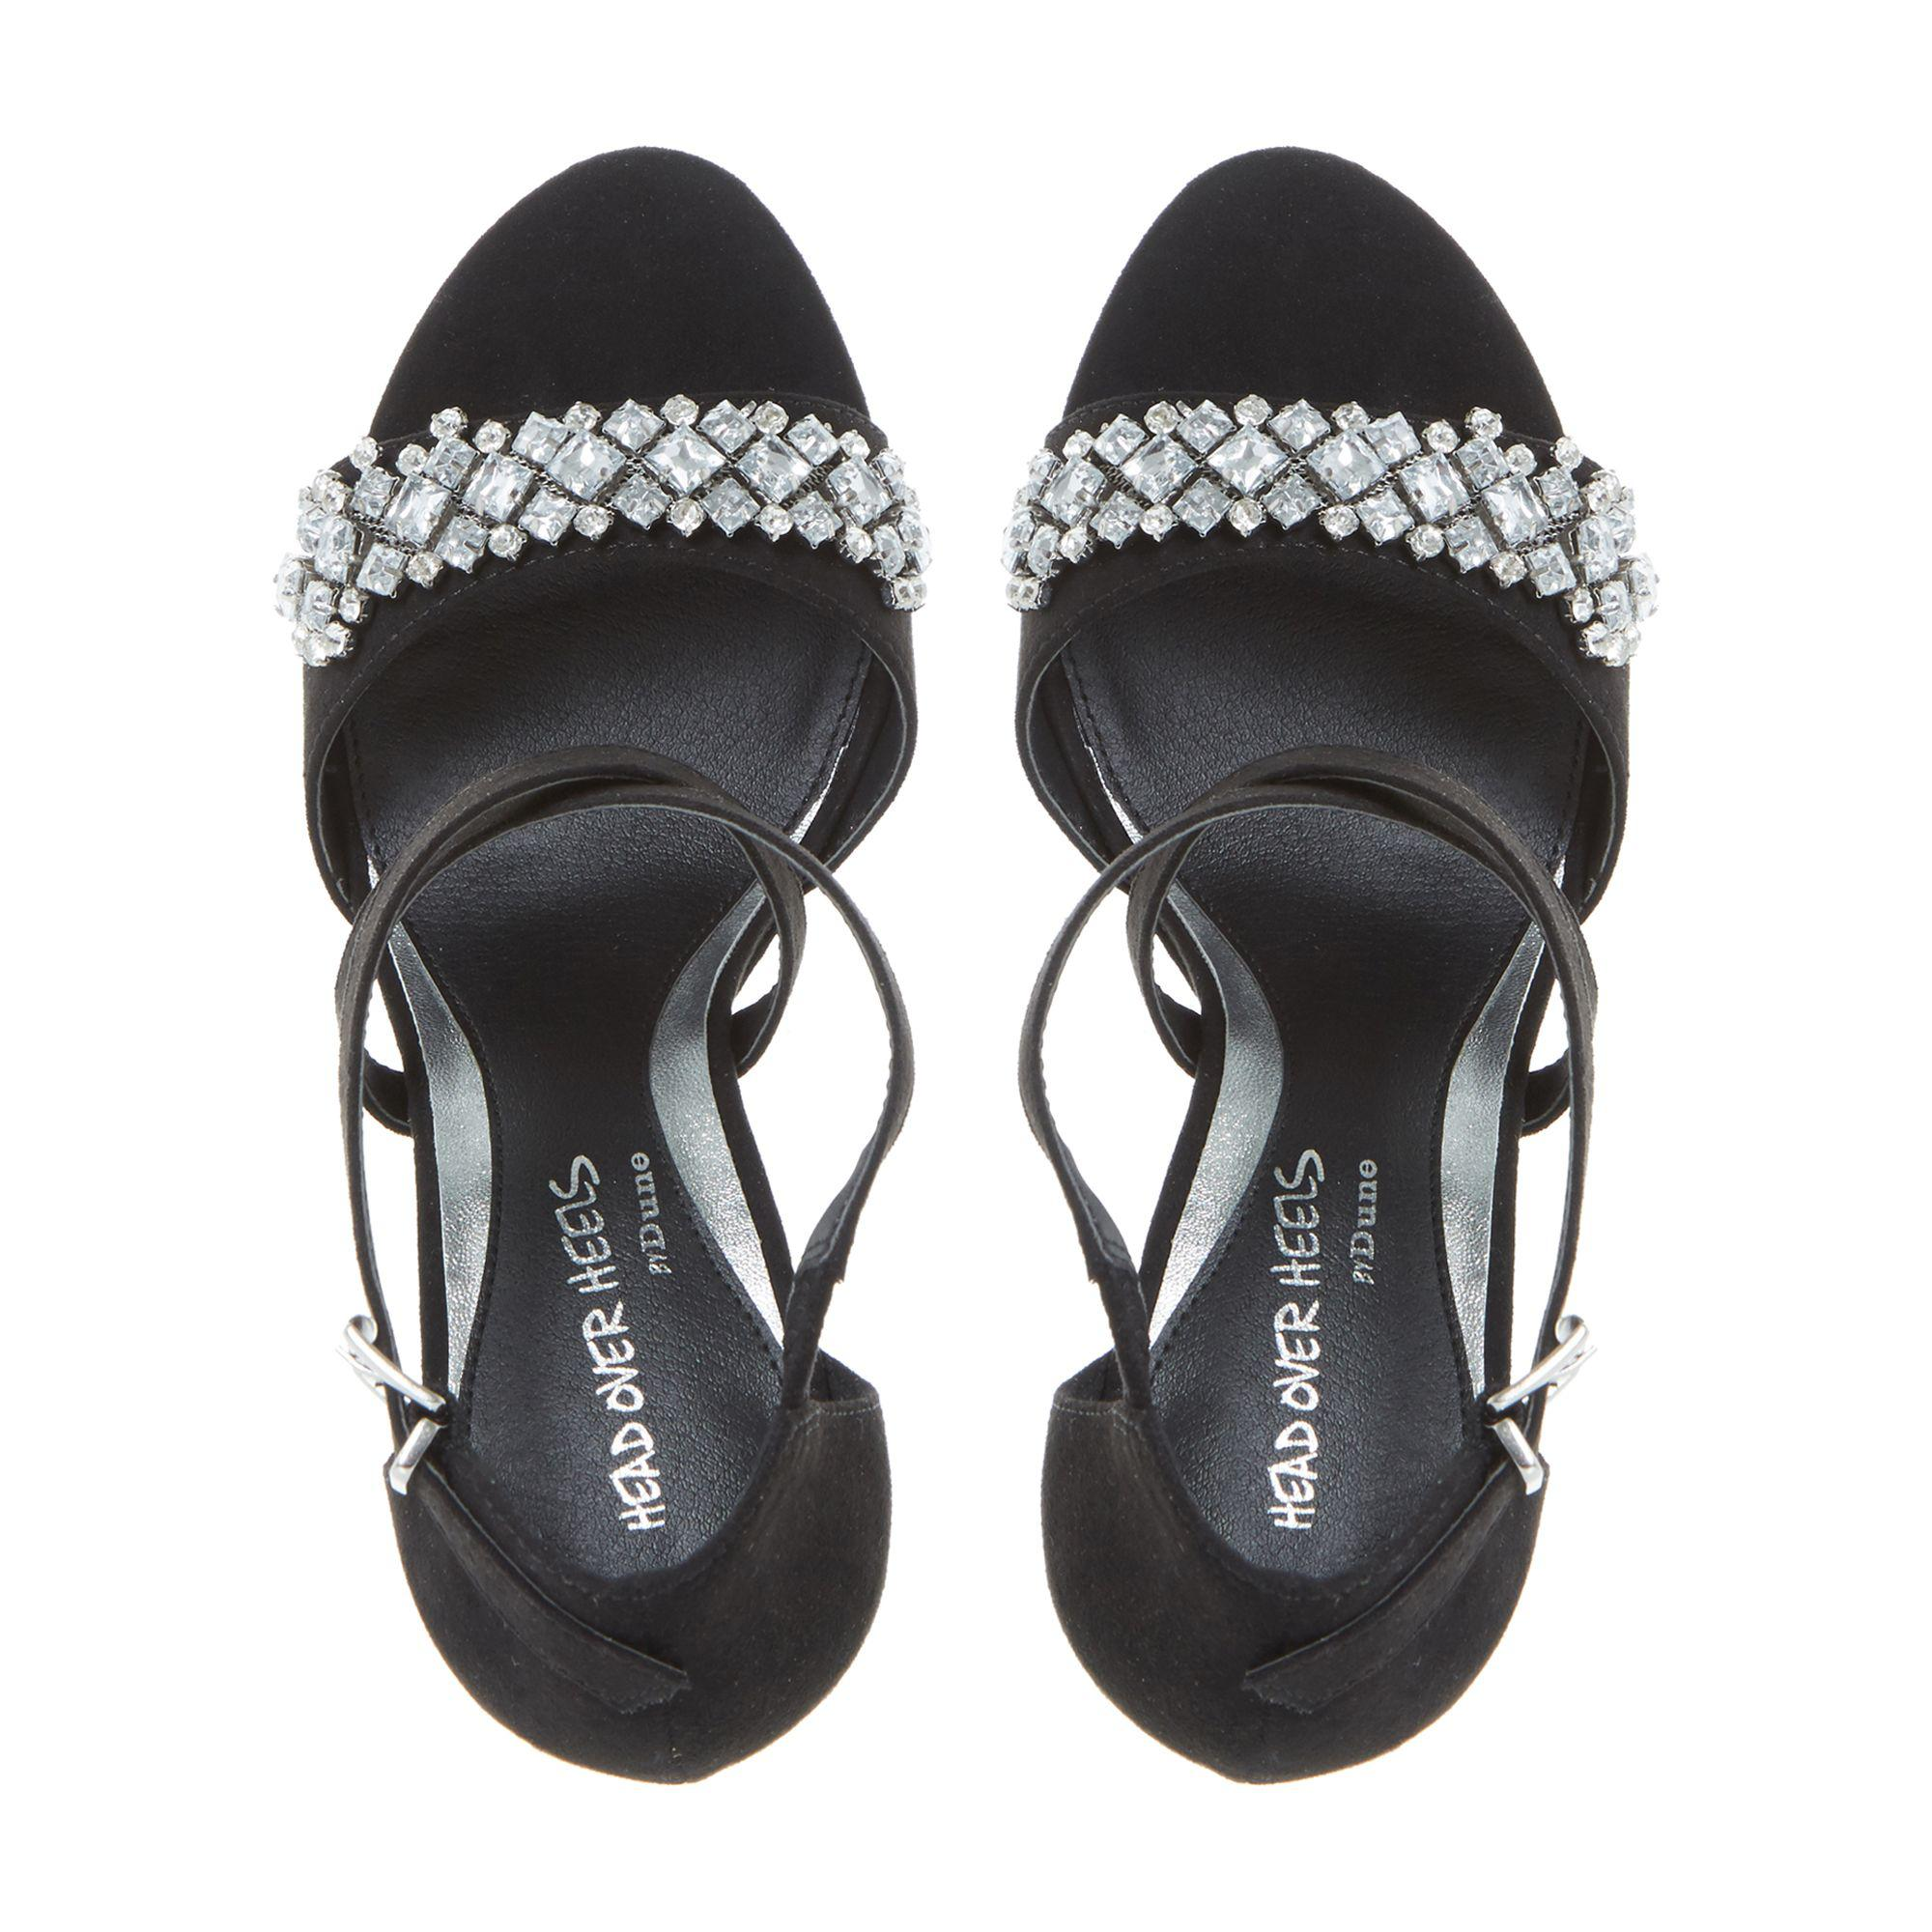 8cc7db853ad4f7 Dune Black  maisy  Jewelled Strap High Heeled Sandals in Black - Lyst